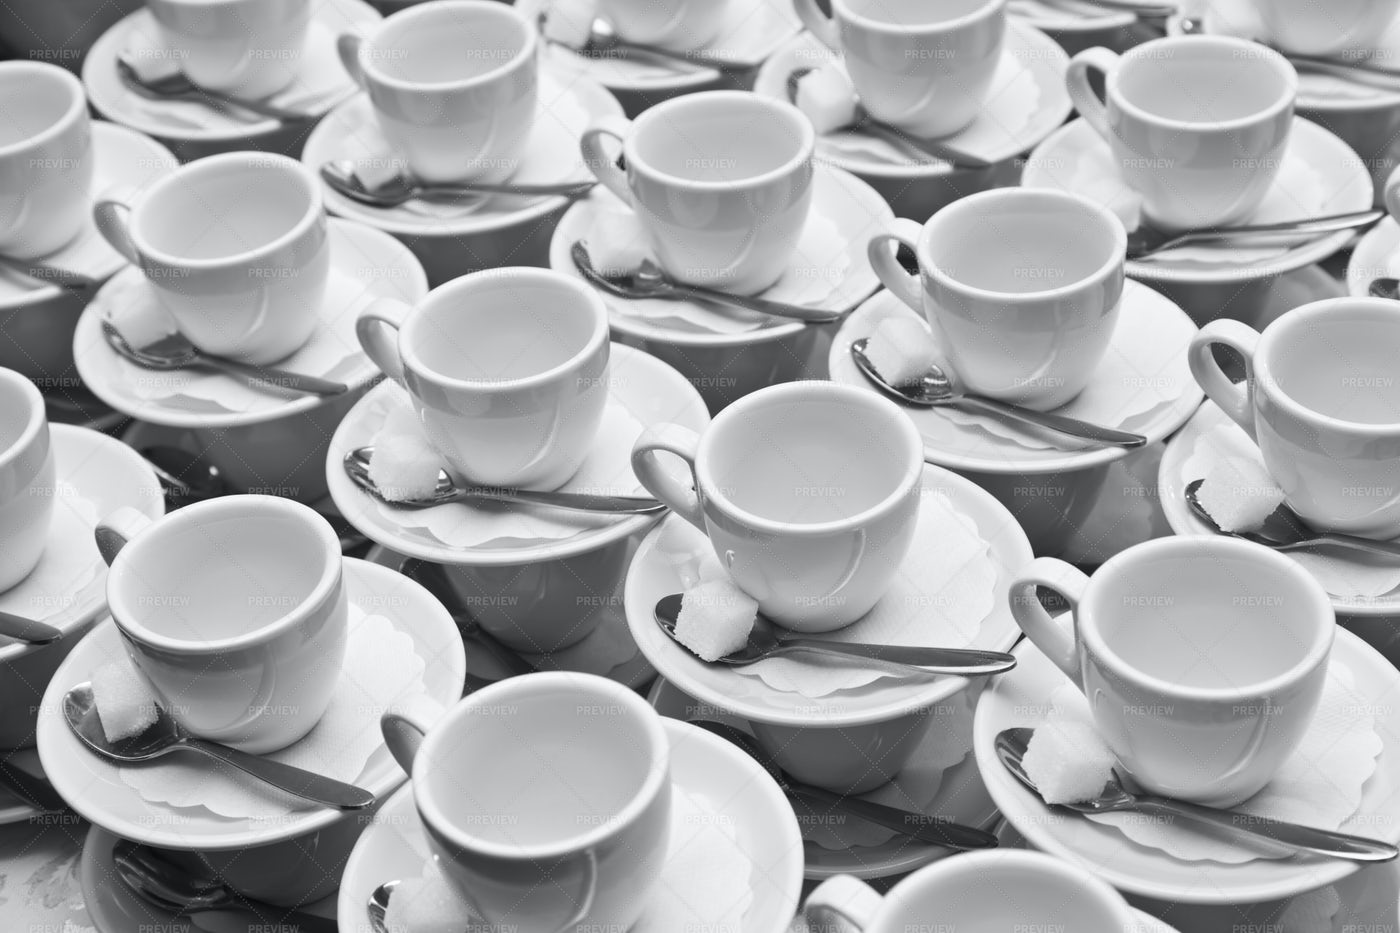 Cups, Saucers And Spoons: Stock Photos